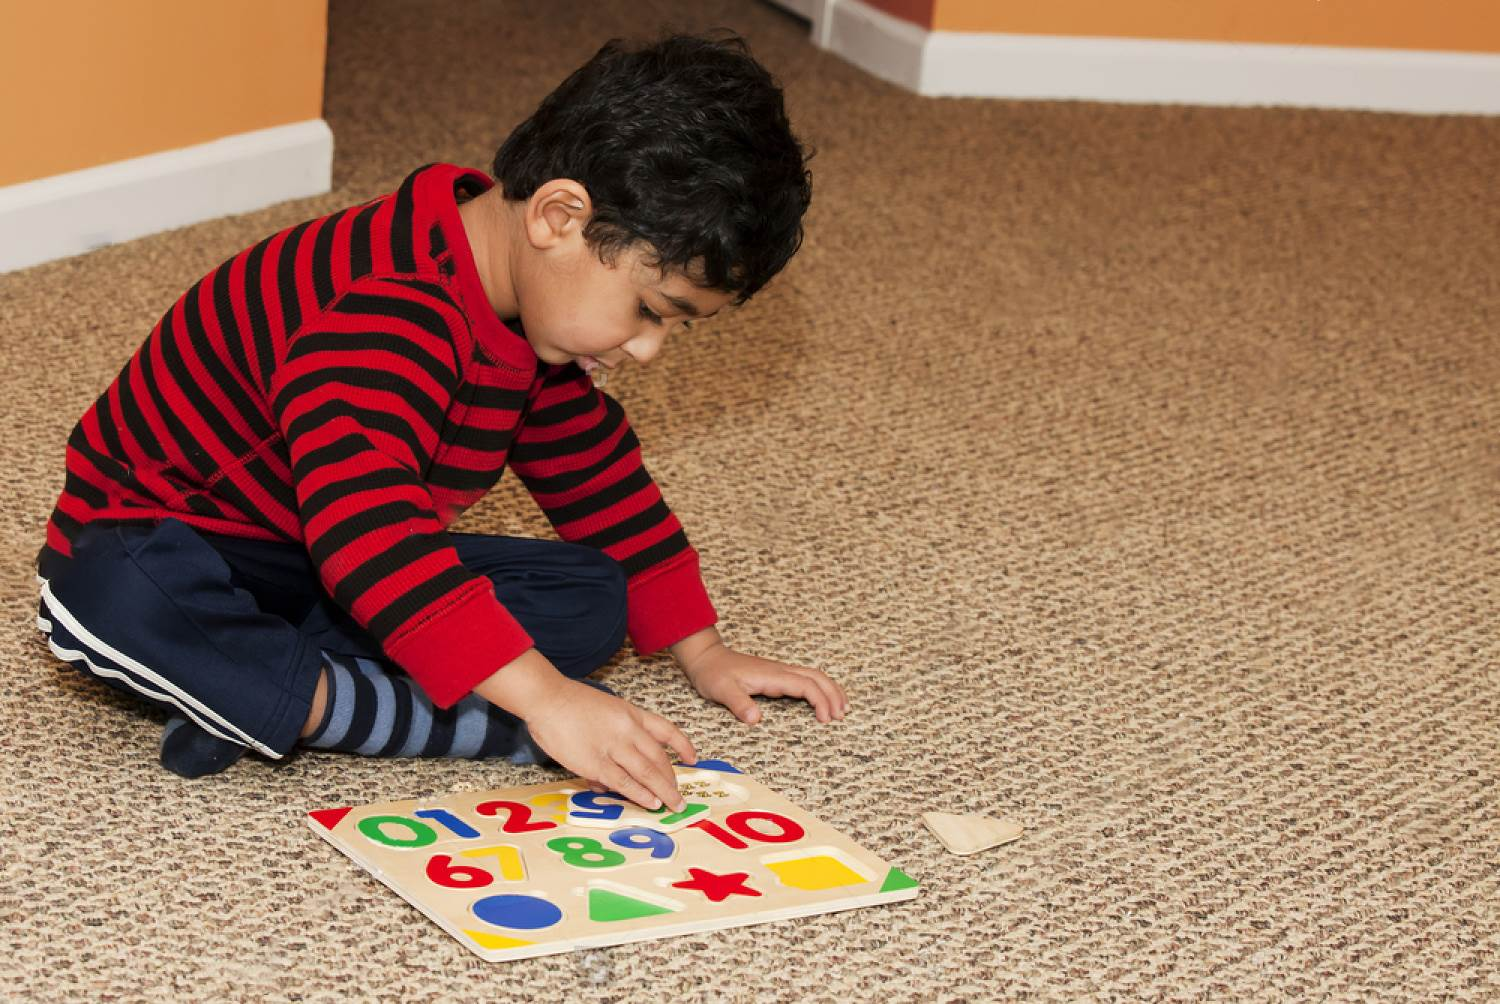 Role of Puzzles in Child's Development